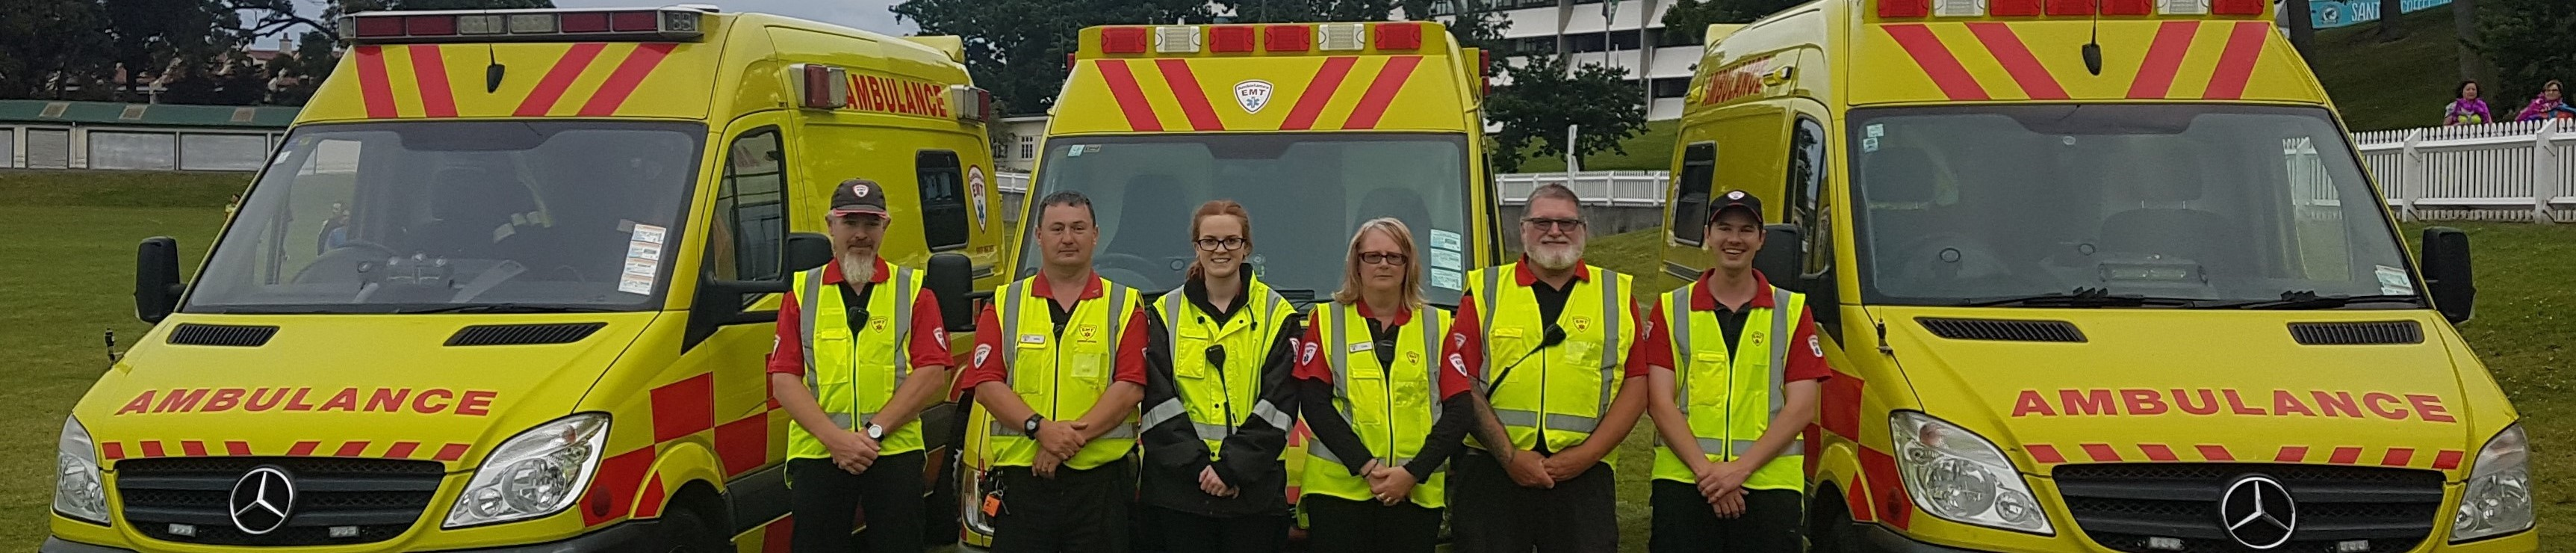 Slider Walking Stars.jpg -  ambulance service  ems